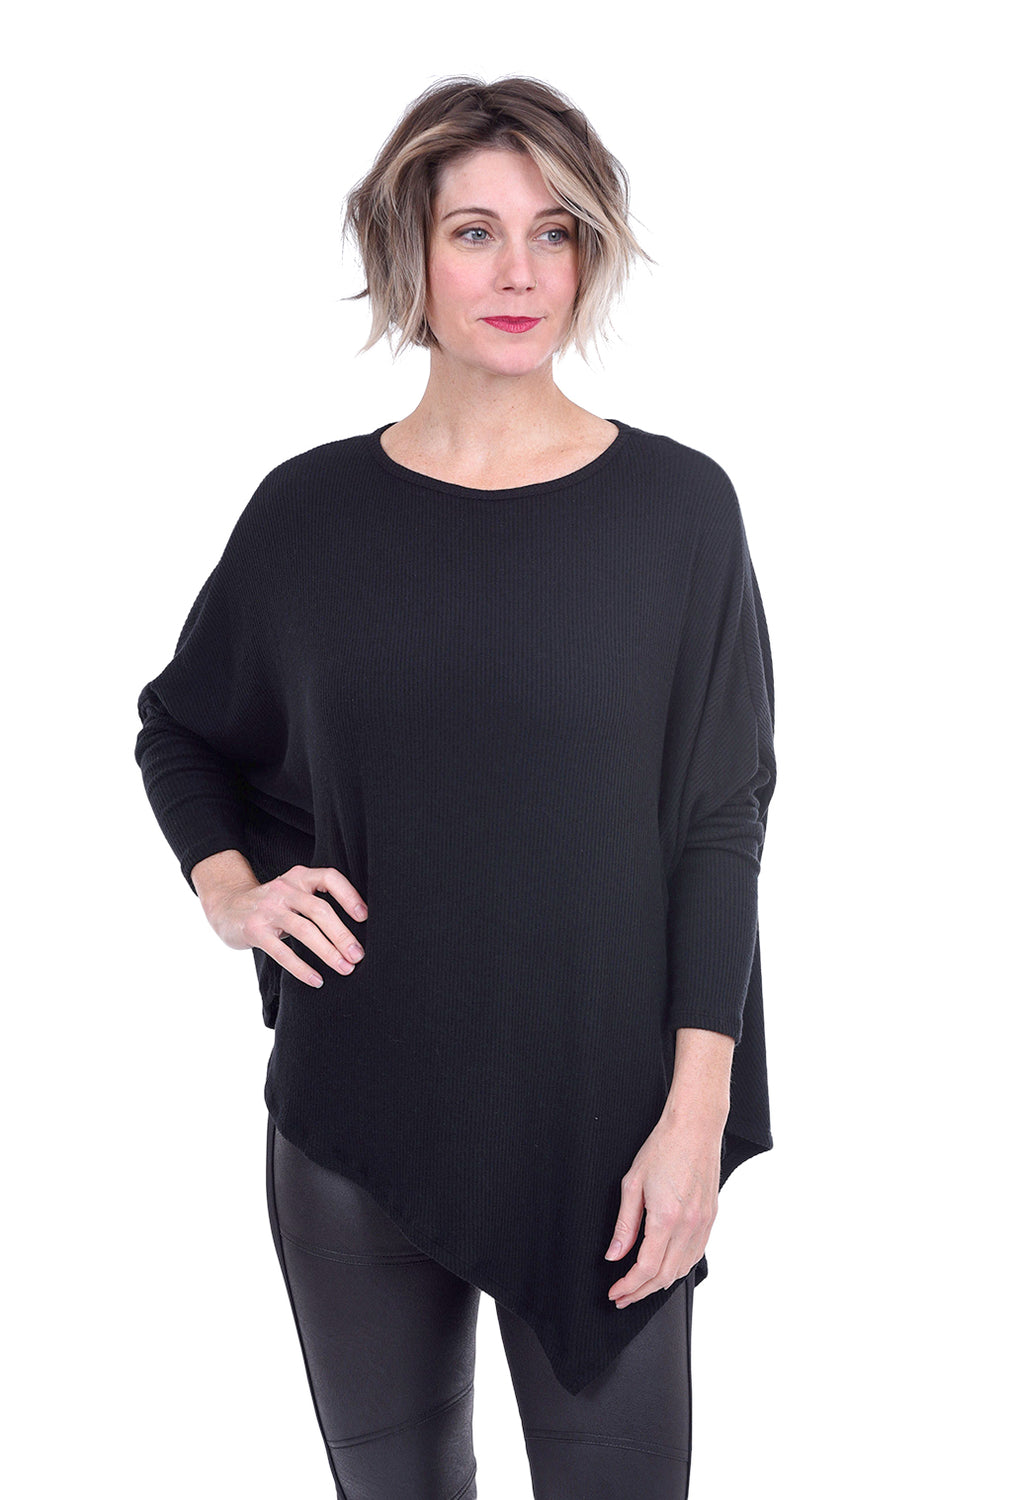 Stark x Ribbed Asymmetric Cozy Top, Black